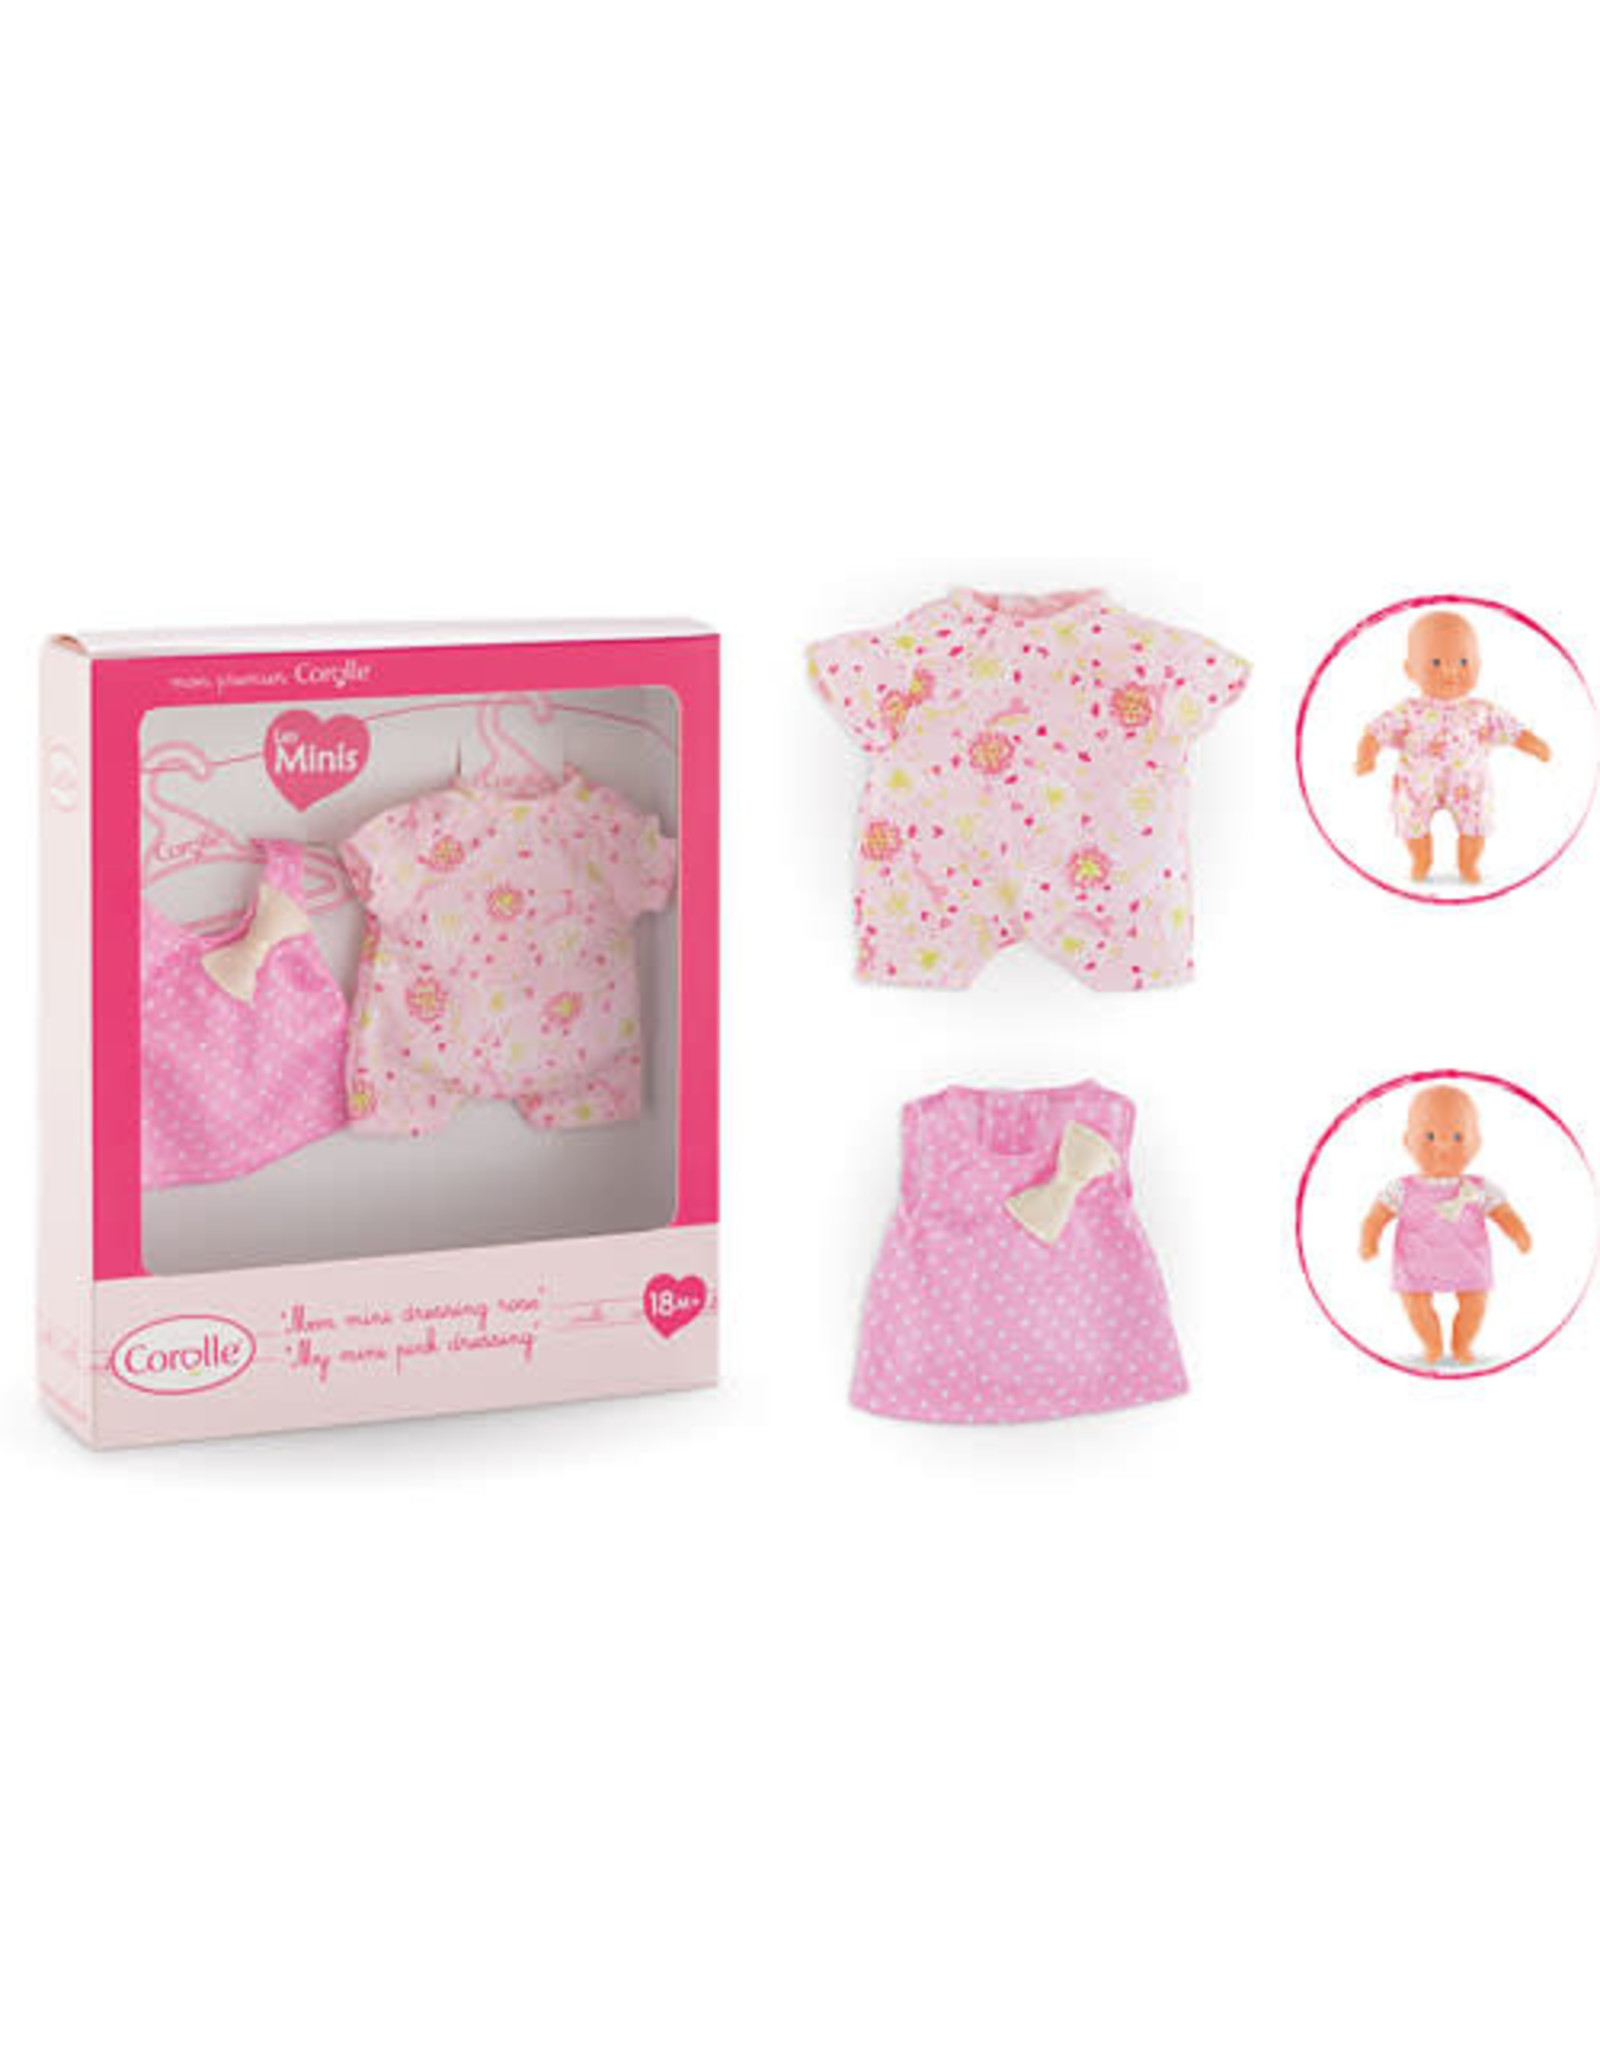 Corolle Corolle My Mini Pink Dressing - CLEARANCE FINAL SALE